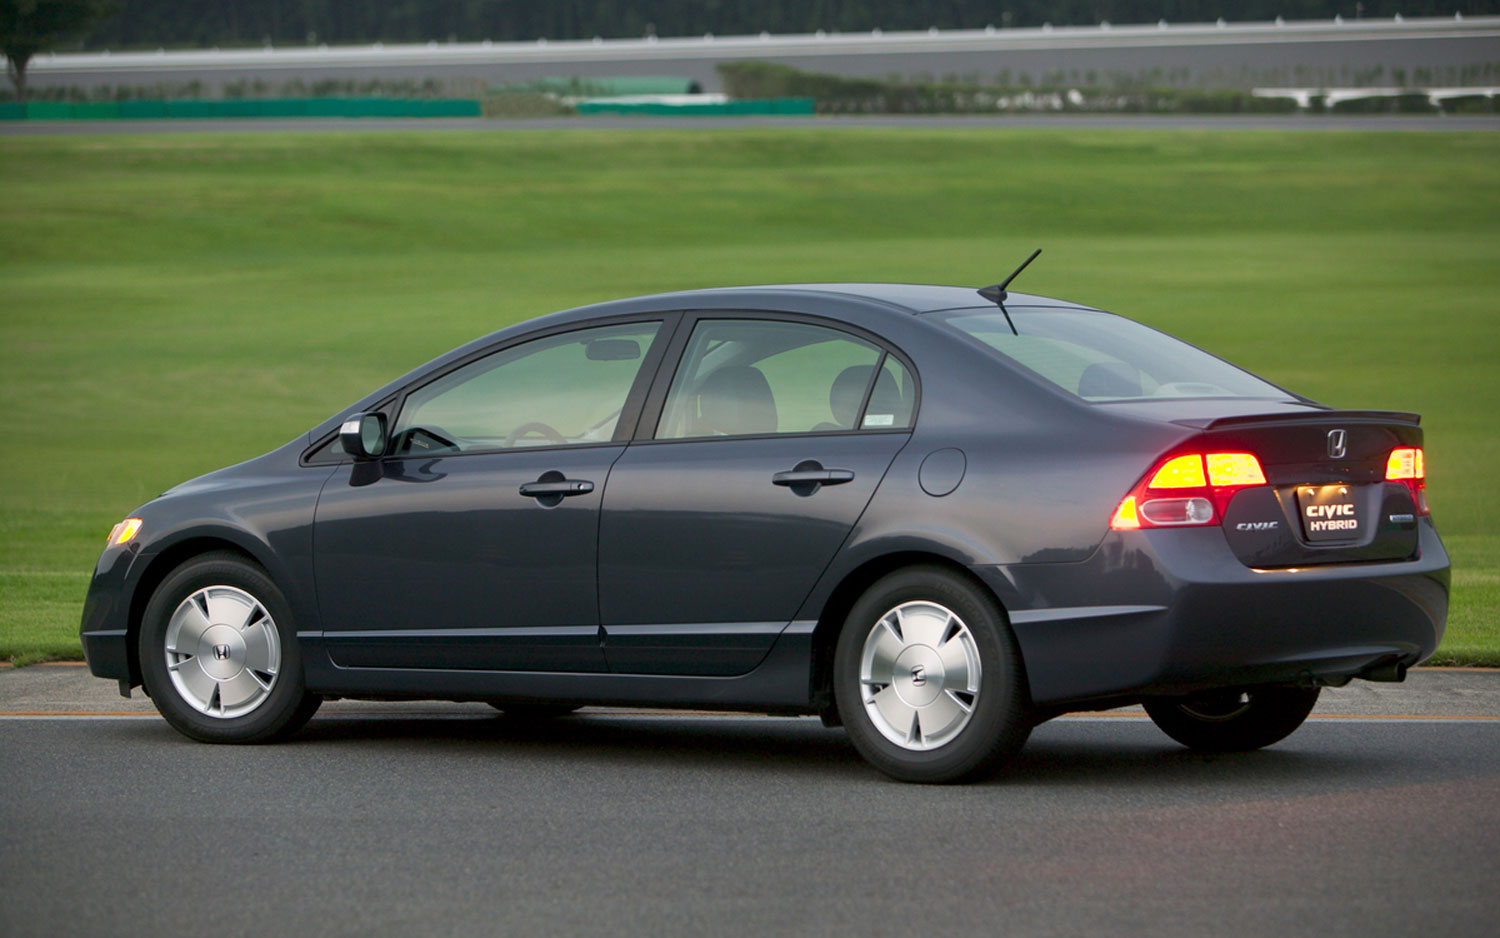 Civic Hybrid Mileage Plaintiffu0027s Past Cars Presented As Evidence In Small  Claims Appeal